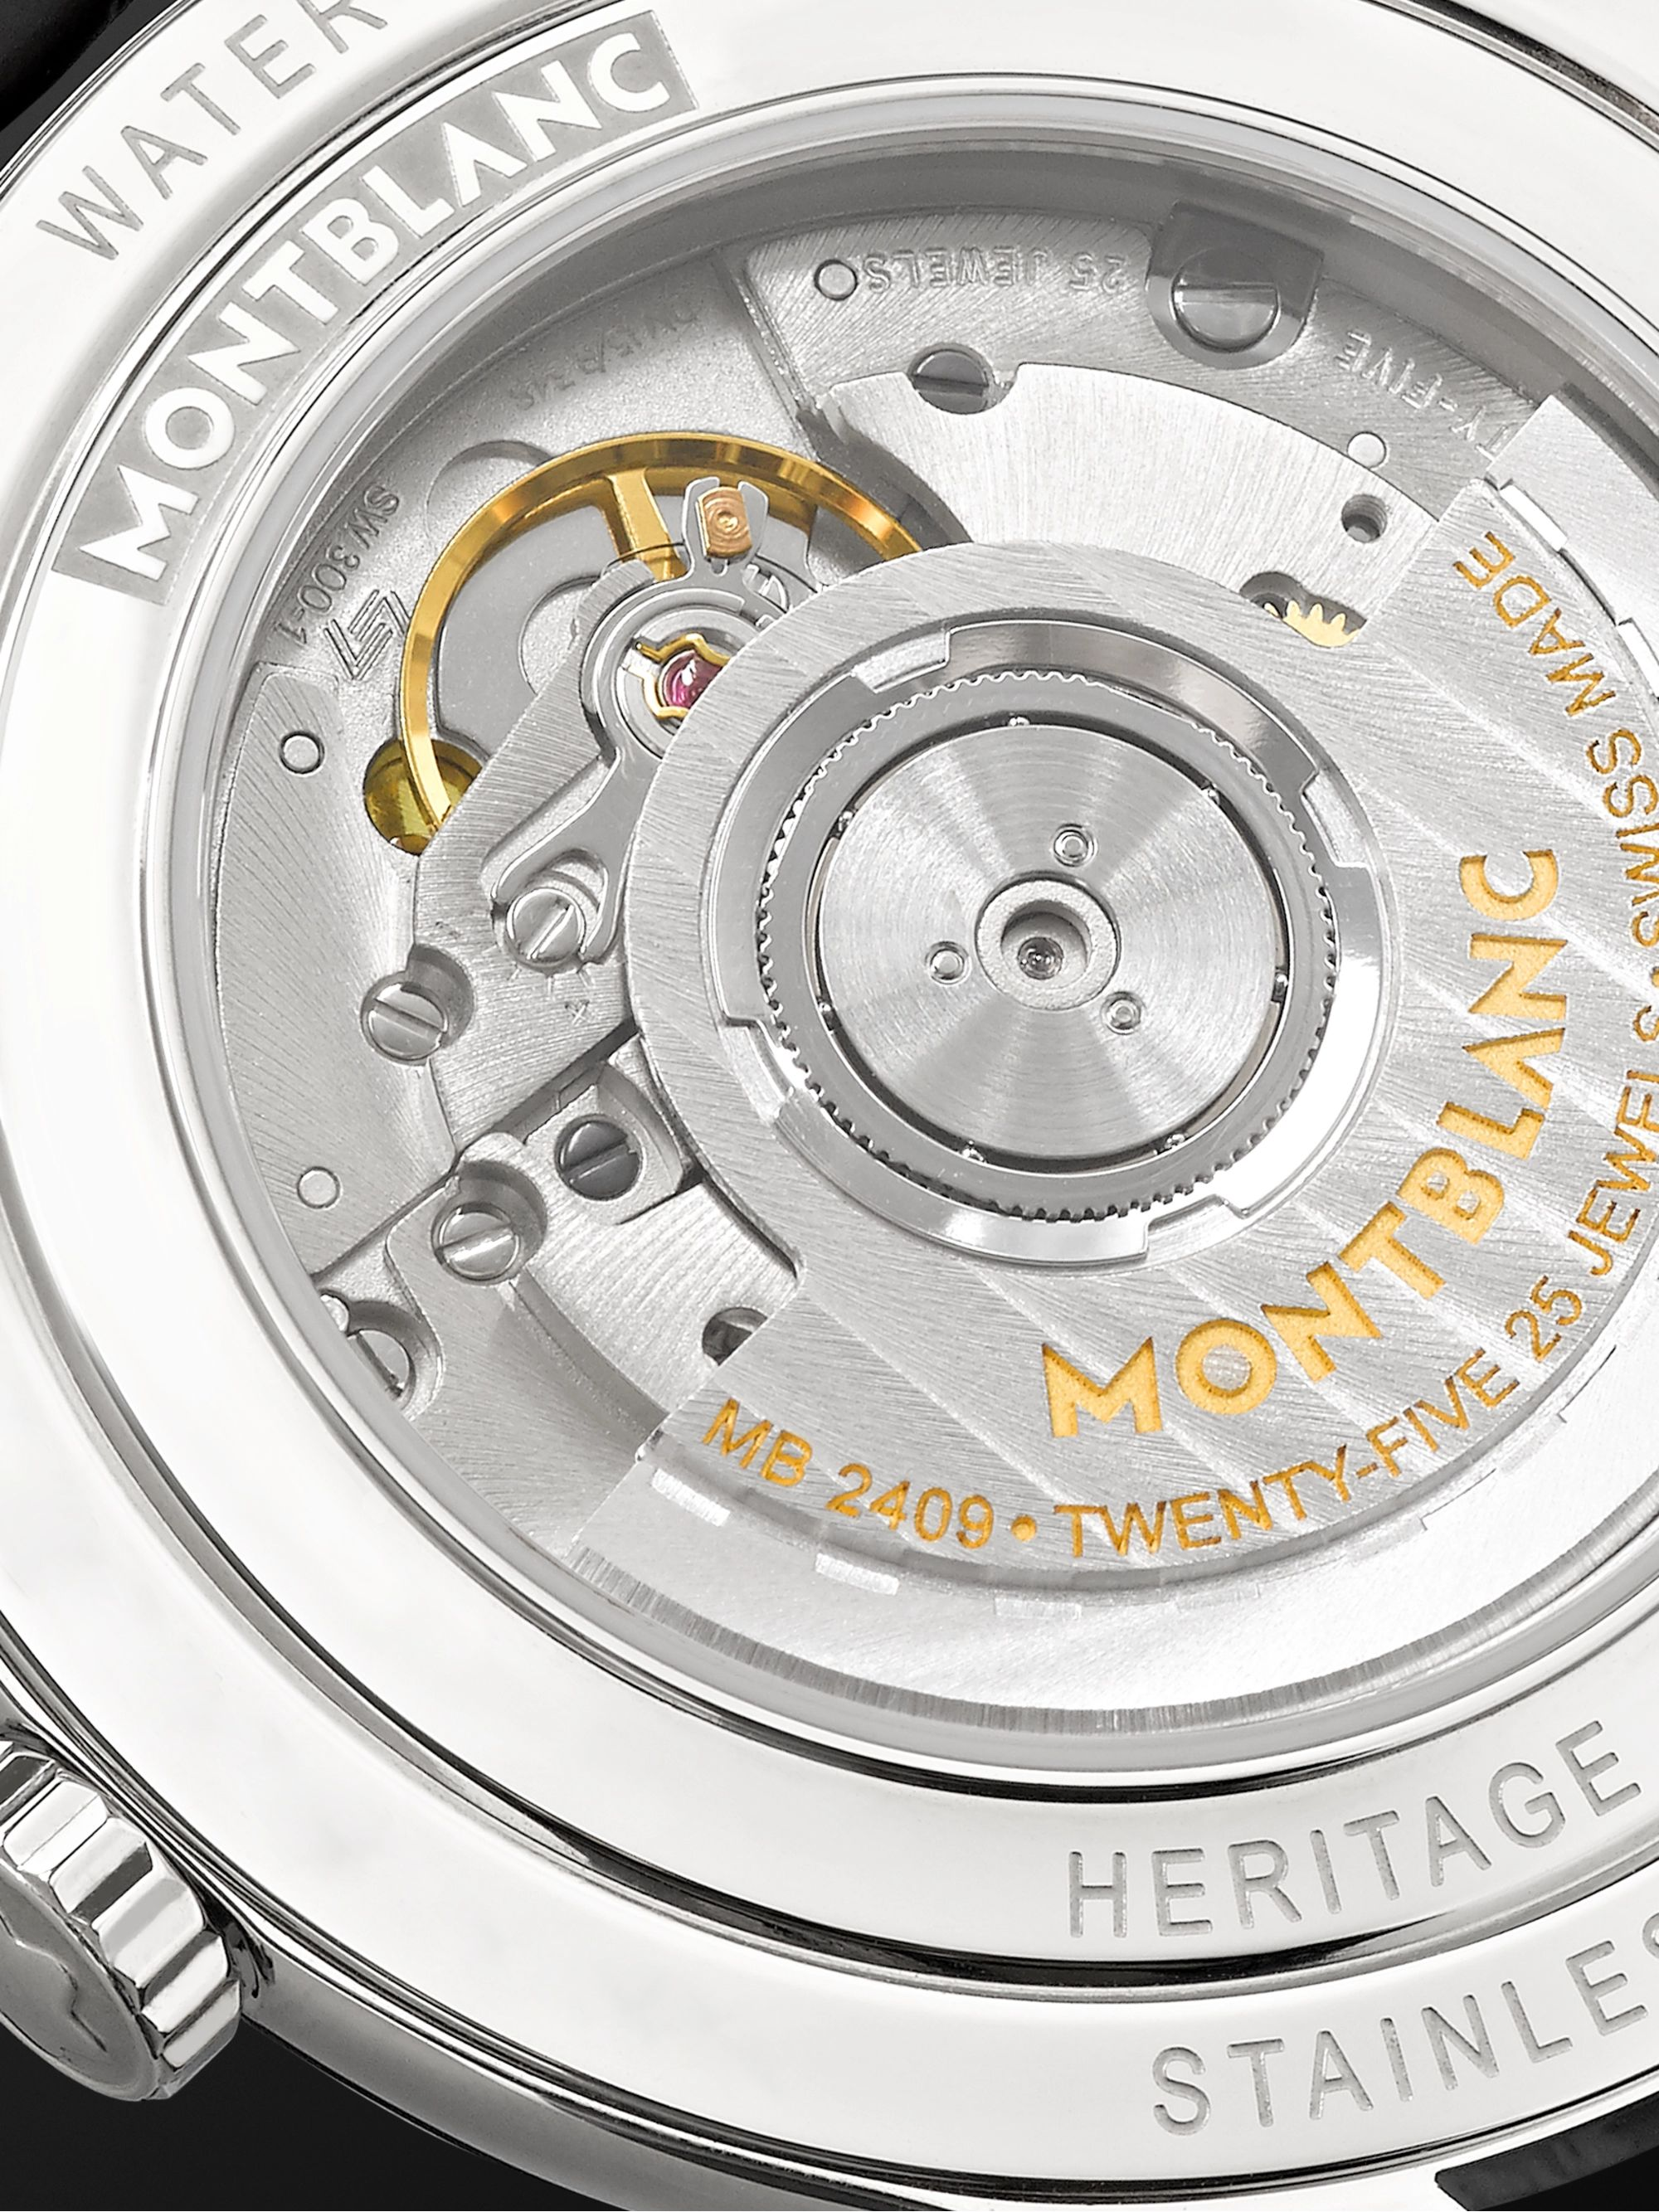 Montblanc Heritage Chronométrie Automatic 40mm Stainless Steel and Alligator Watch, Ref. No. 112533